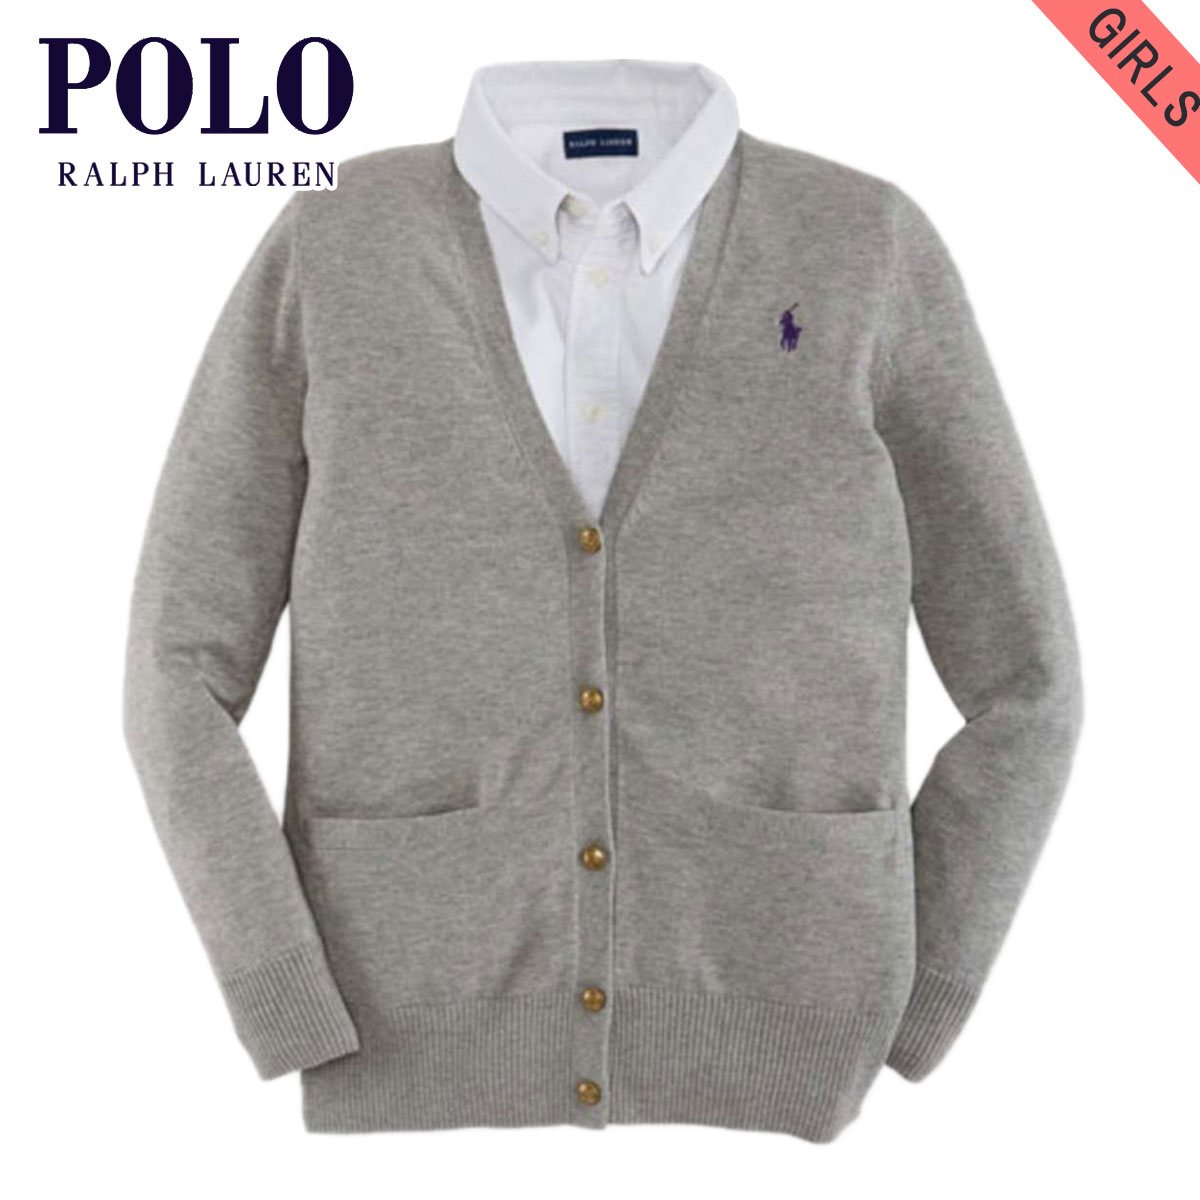 85305be3290 Poloralflorenkids POLO RALPH LAUREN CHILDREN genuine kids clothing girls  Cardigan SLOUCHY COTTON CARDIGAN 40925776